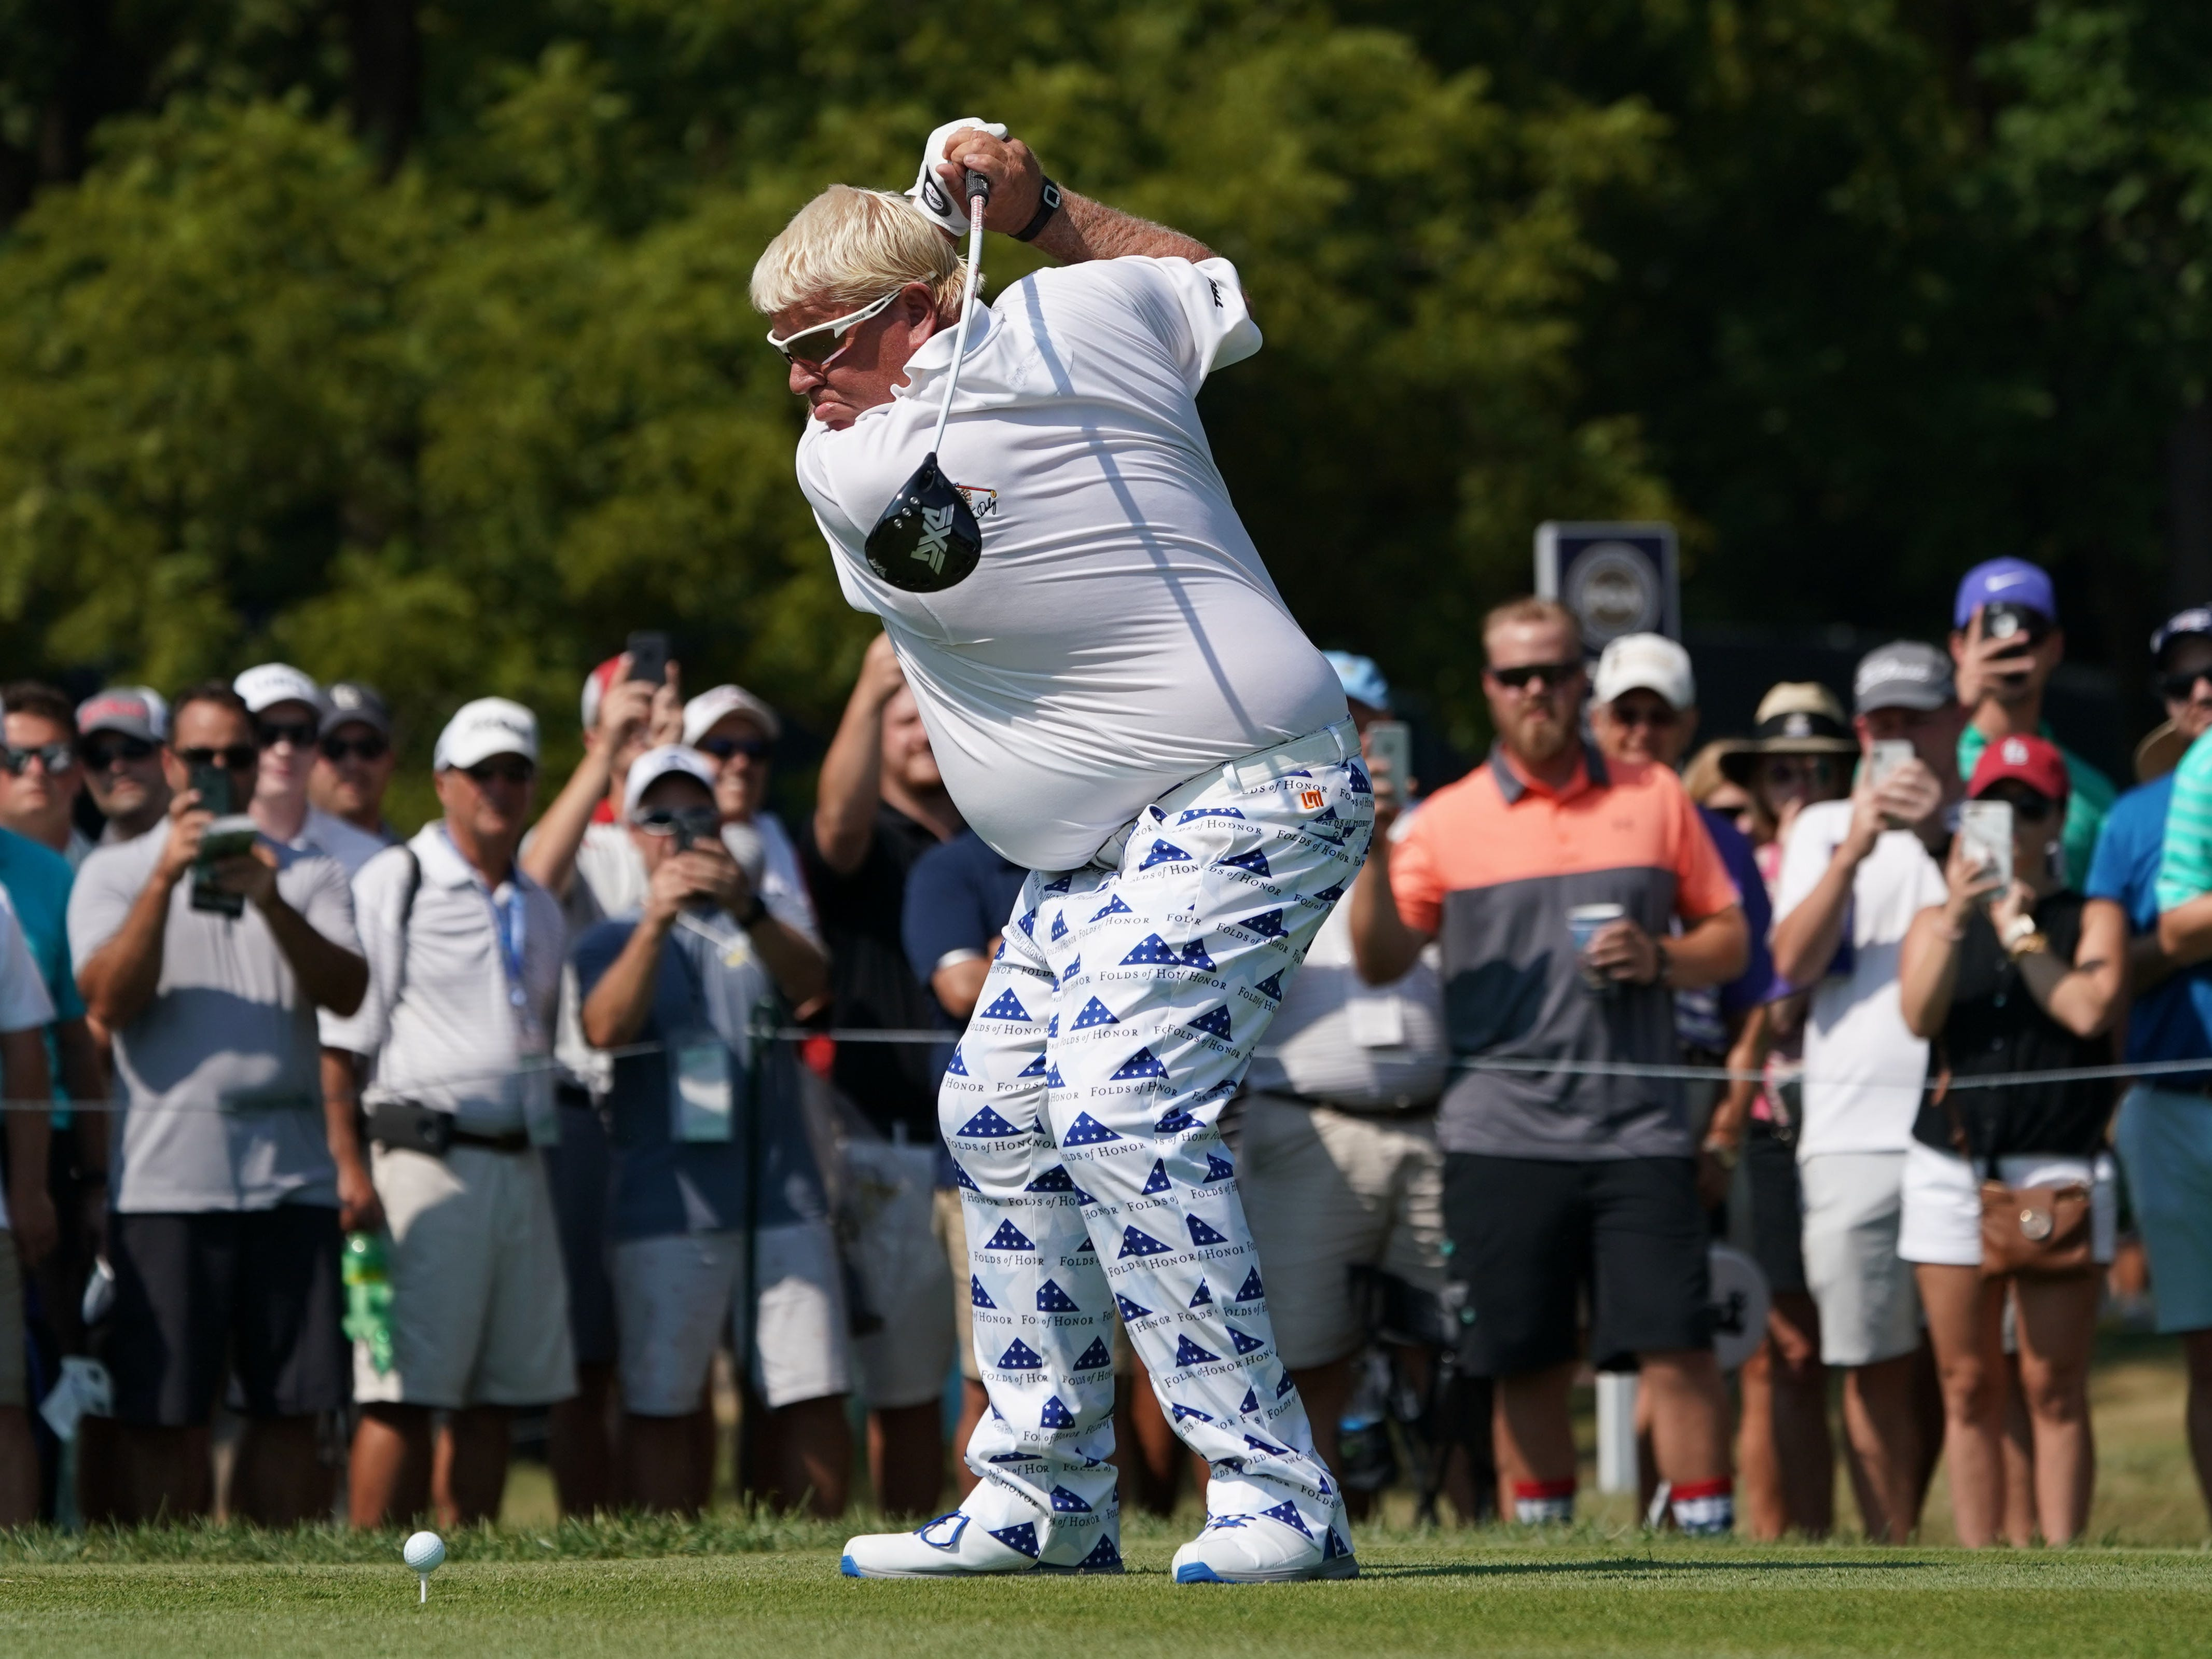 John Daly hits his tee shot on the 12th hole during the second round.